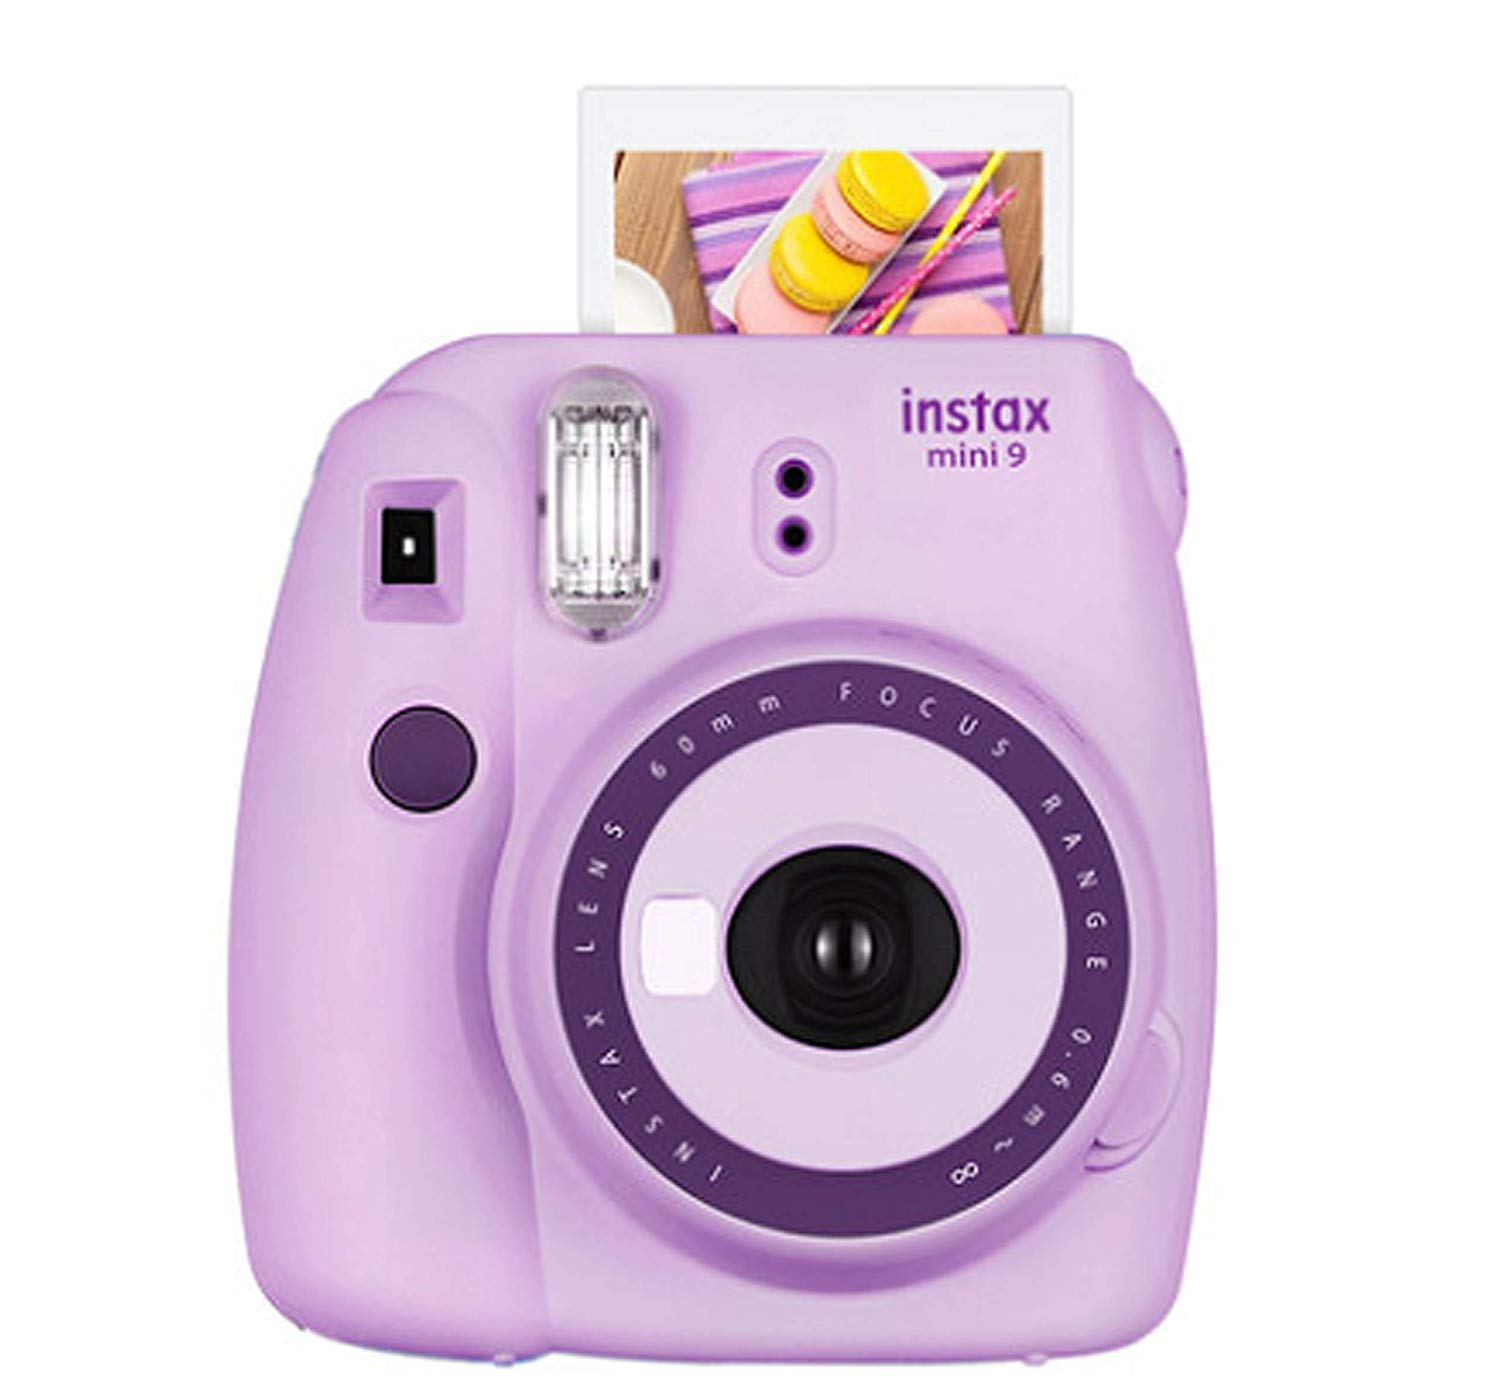 Instax Mini 9 for Fujifilm Camera Film Instant Camera Camera for Ideal Gift - Light Purple by Shaveh